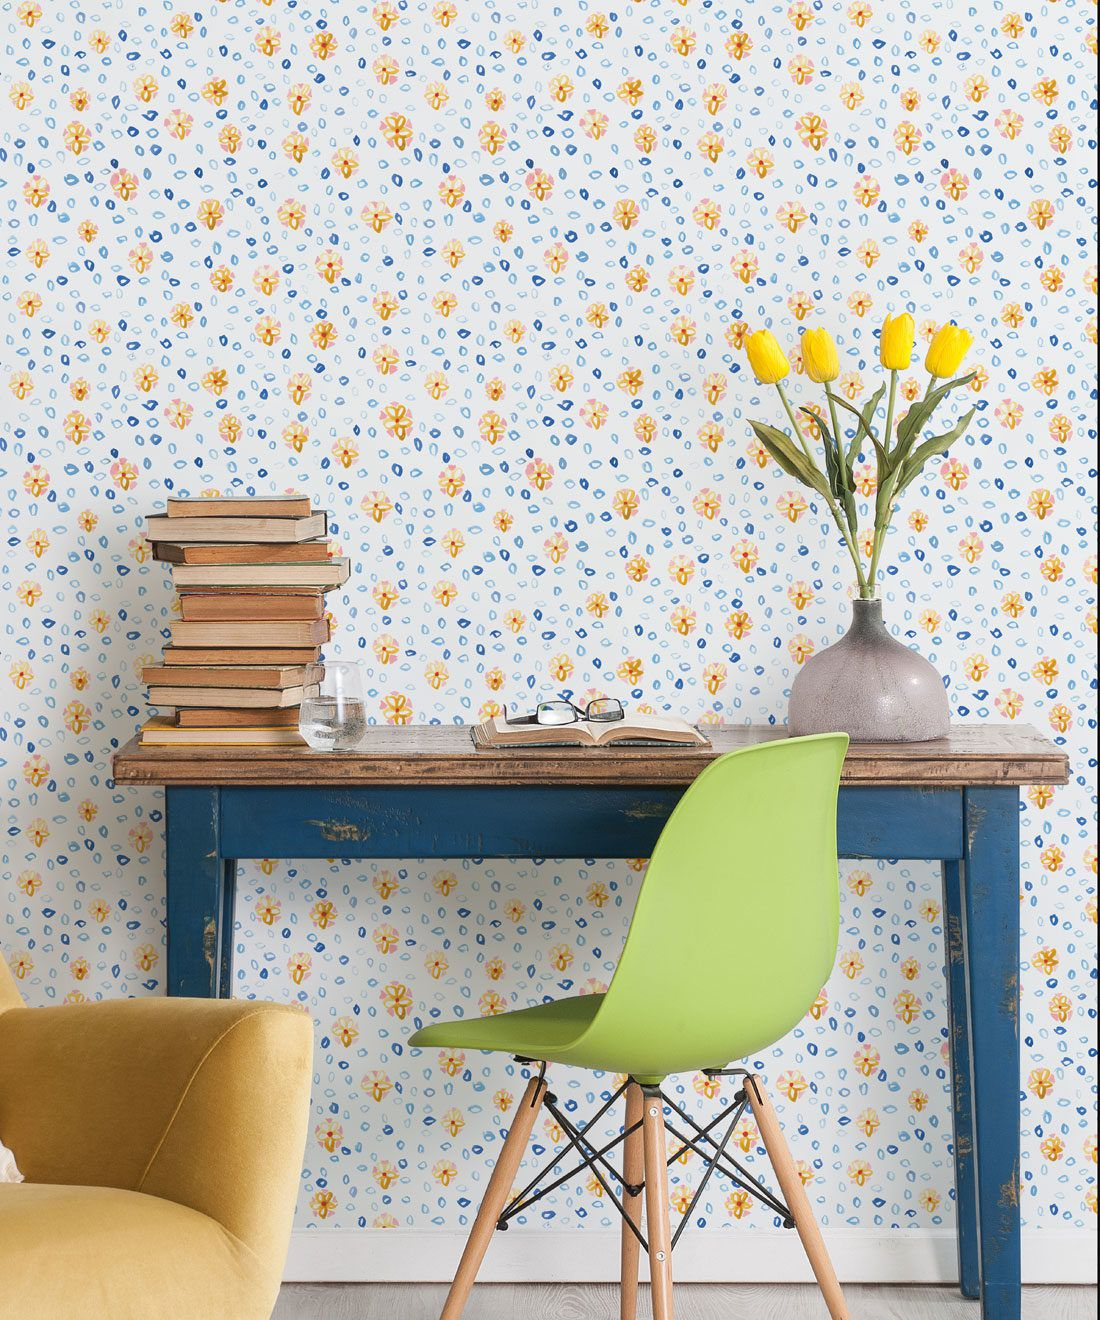 Al Hadiqa Wallpaper • Dainty Floral Design • Desk with books stacked on the left and a lime green chair in front with yellow tulips in a vase on the right side of the desk. • Milton & King Europe